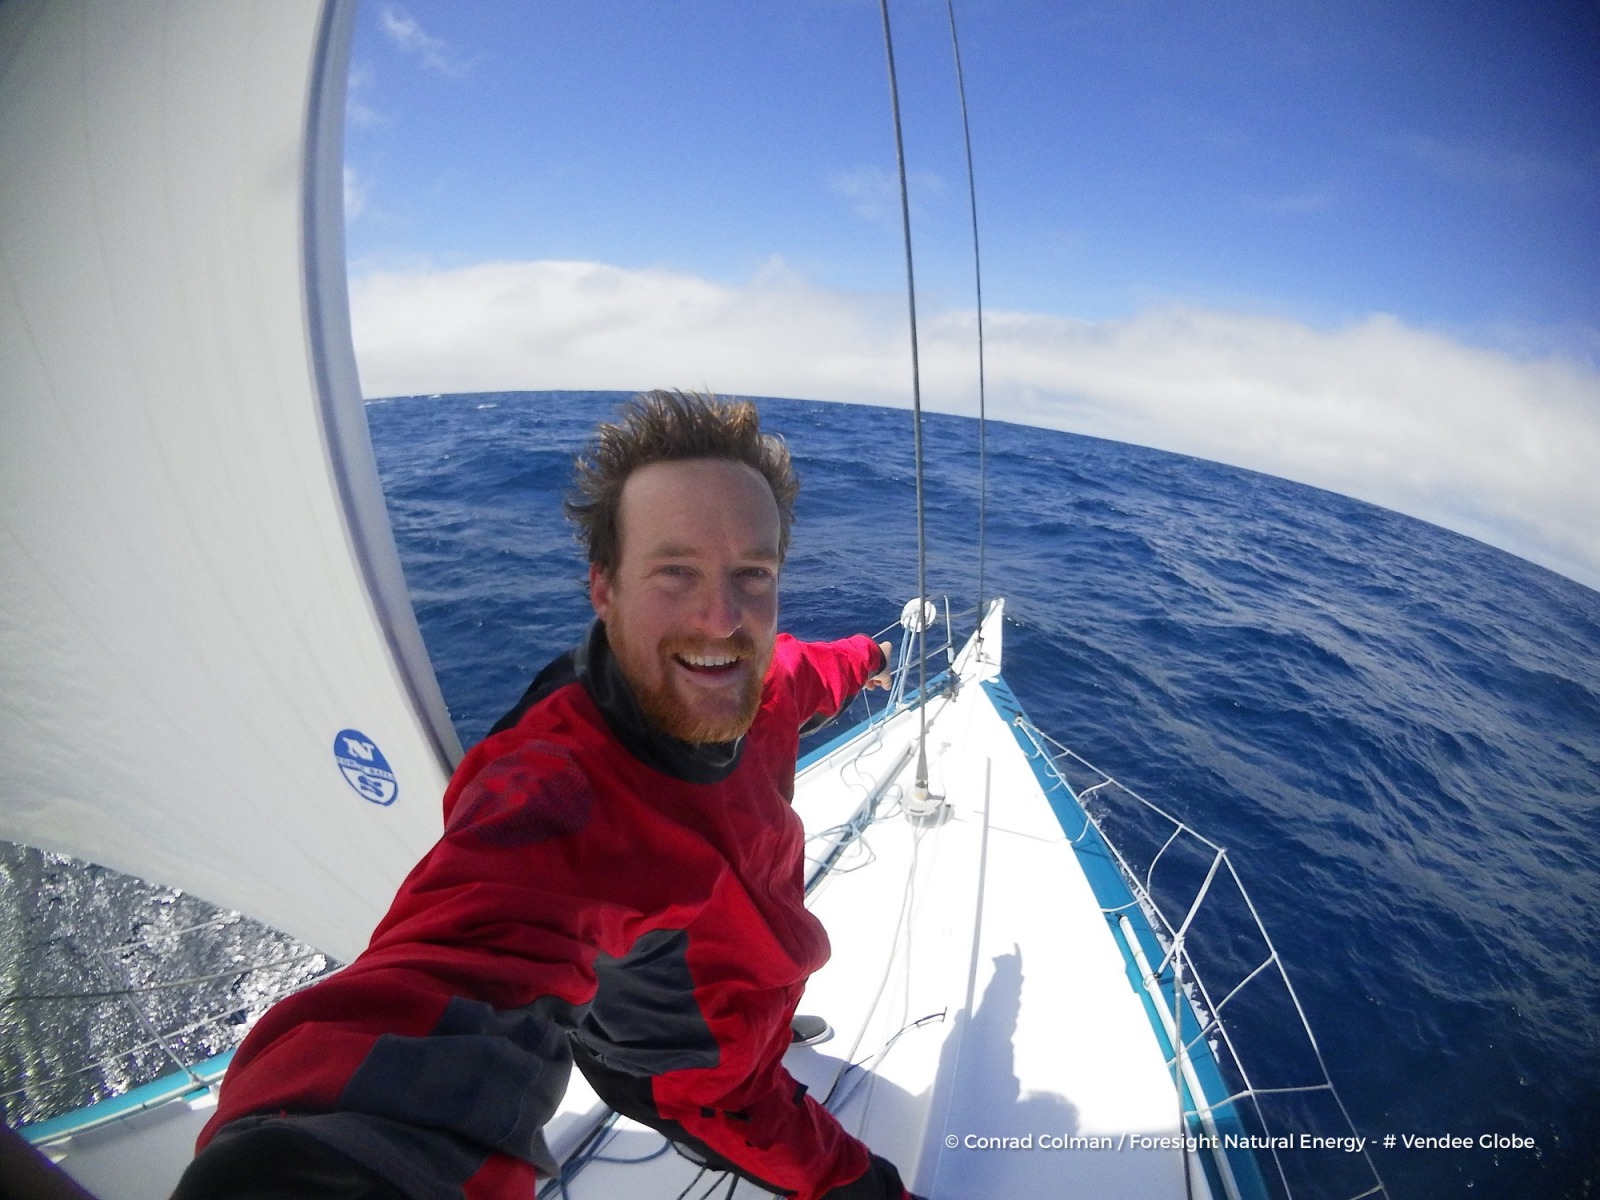 Photo sent from the boat Foresight Natural Energy, on January 5th, 2017 - Photo Conrad ColmanPhoto envoyée depuis le bateau Foresight Natural Energy le 5 Janvier 2017 - Photo Conrad ColmanLook whos got a forestay